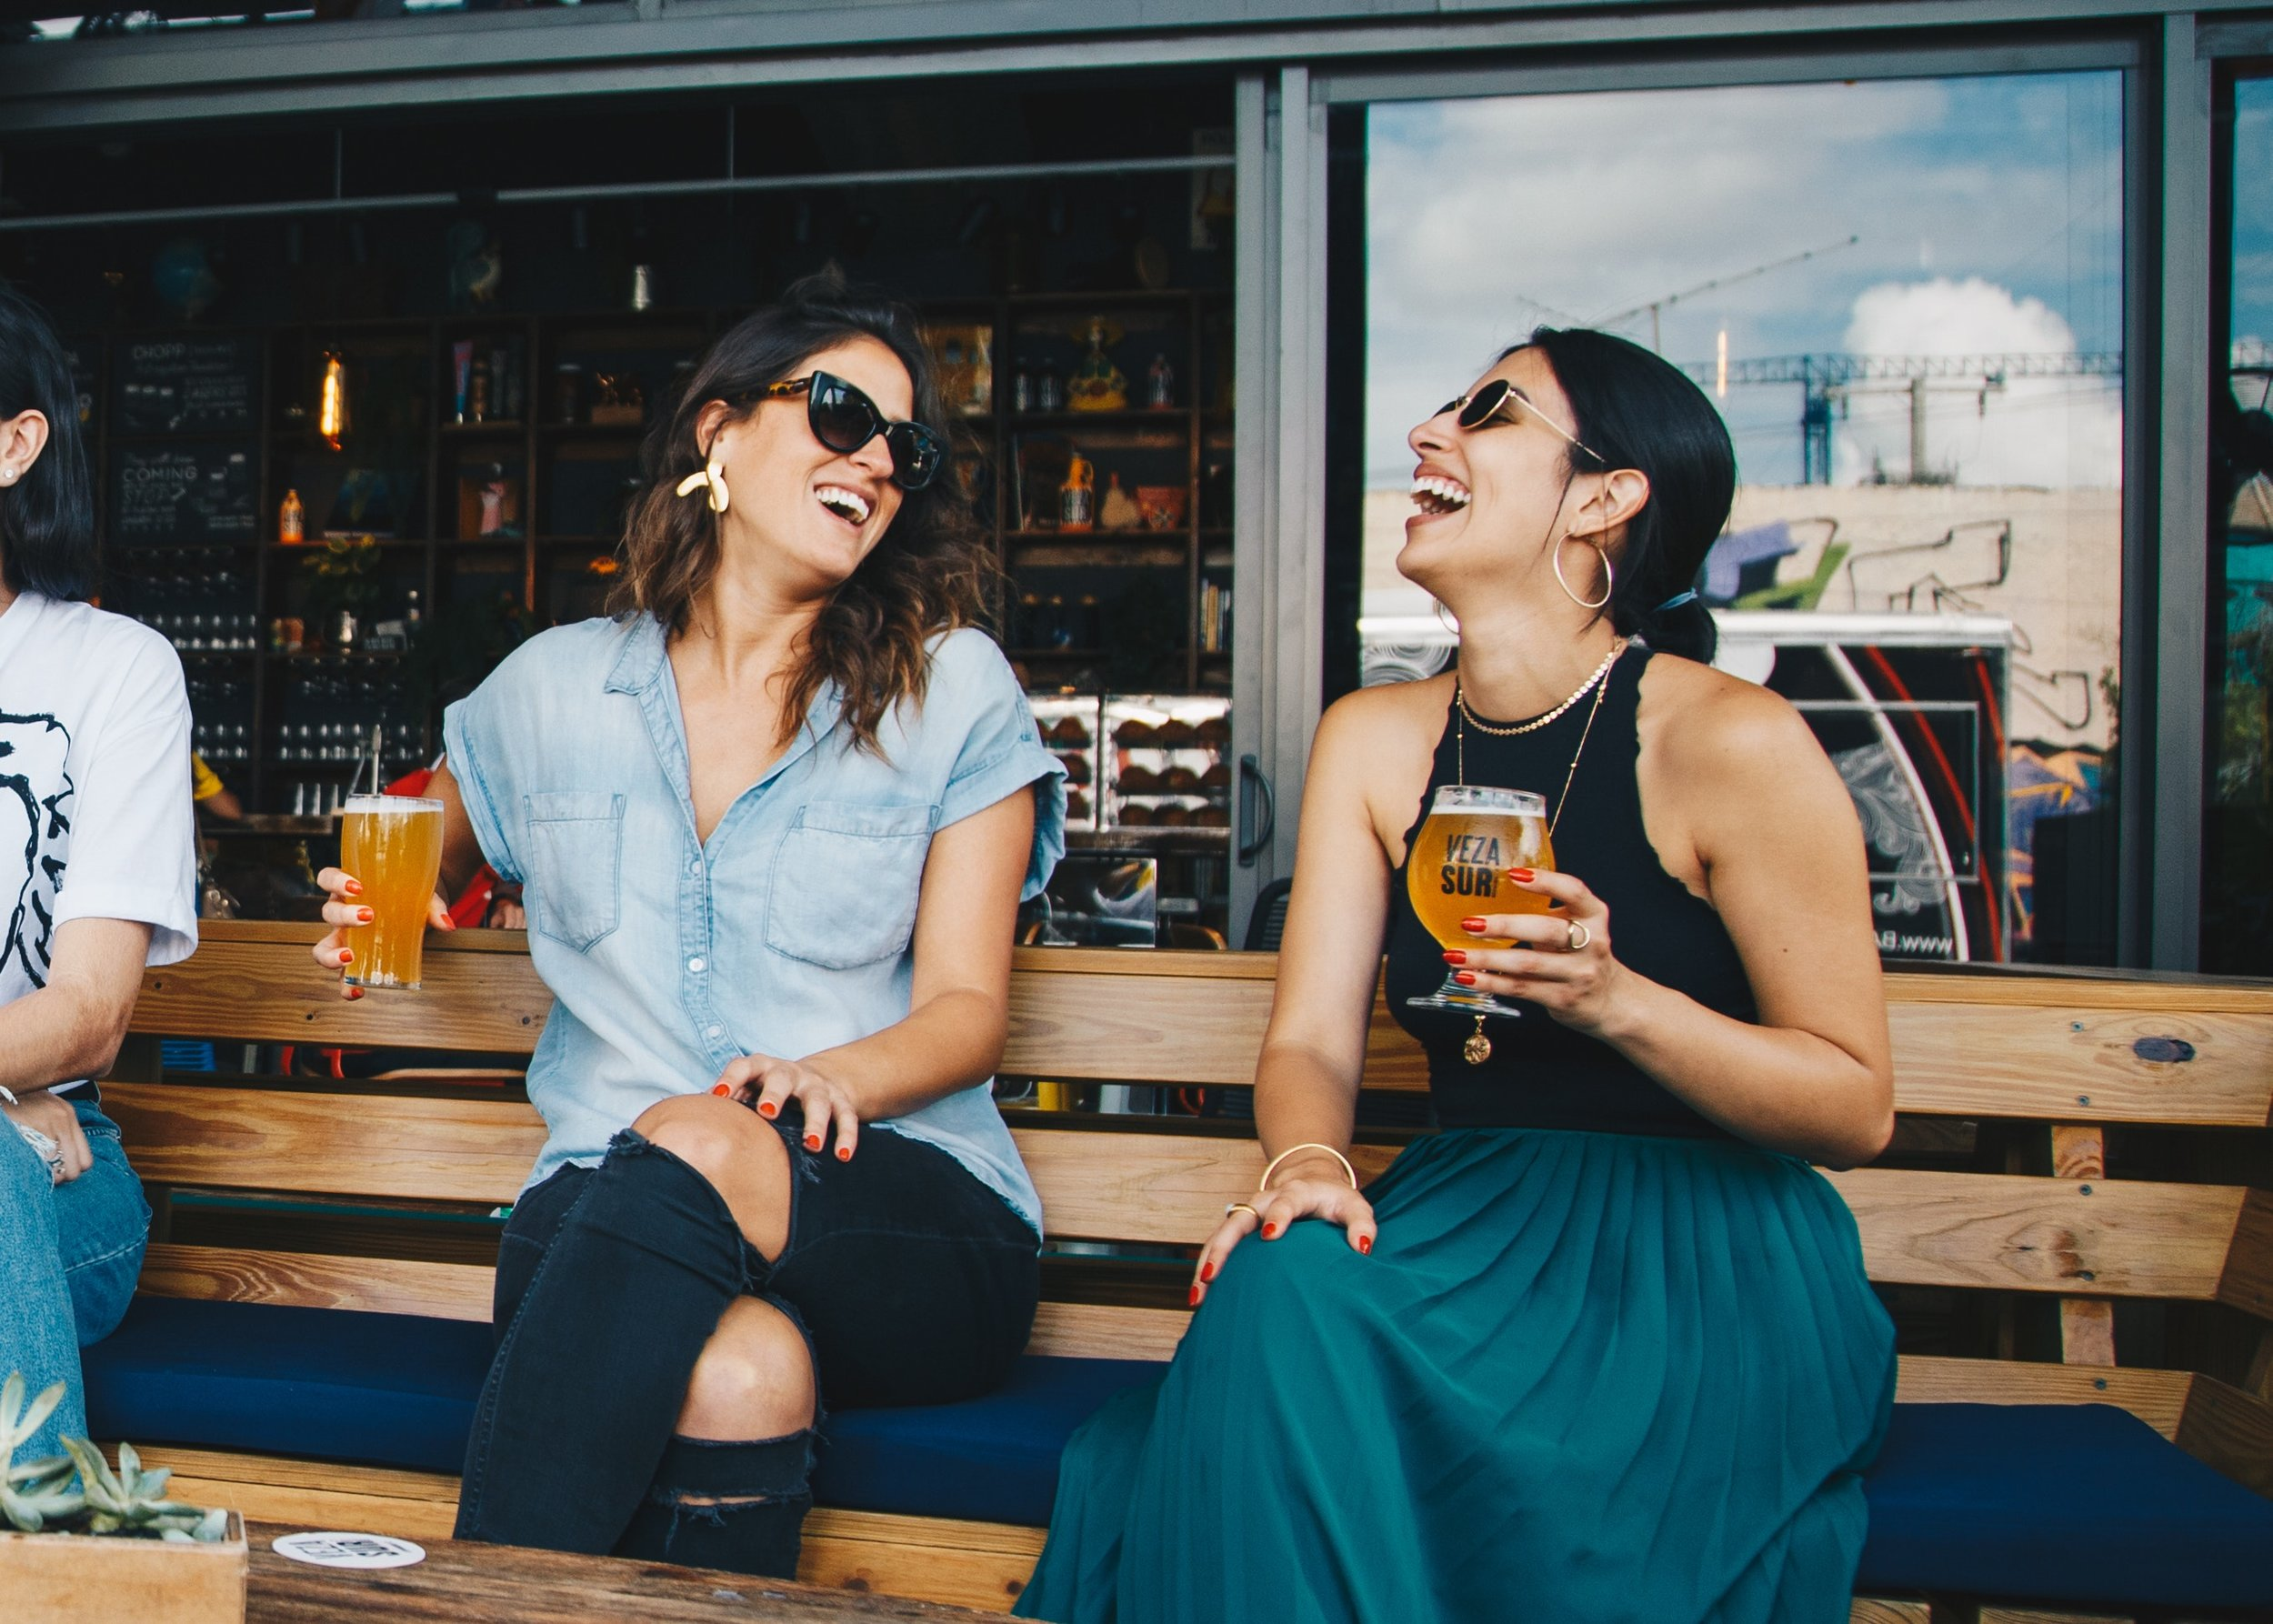 Two girls drinking beer. Photo source ELEVATE on Pexels.